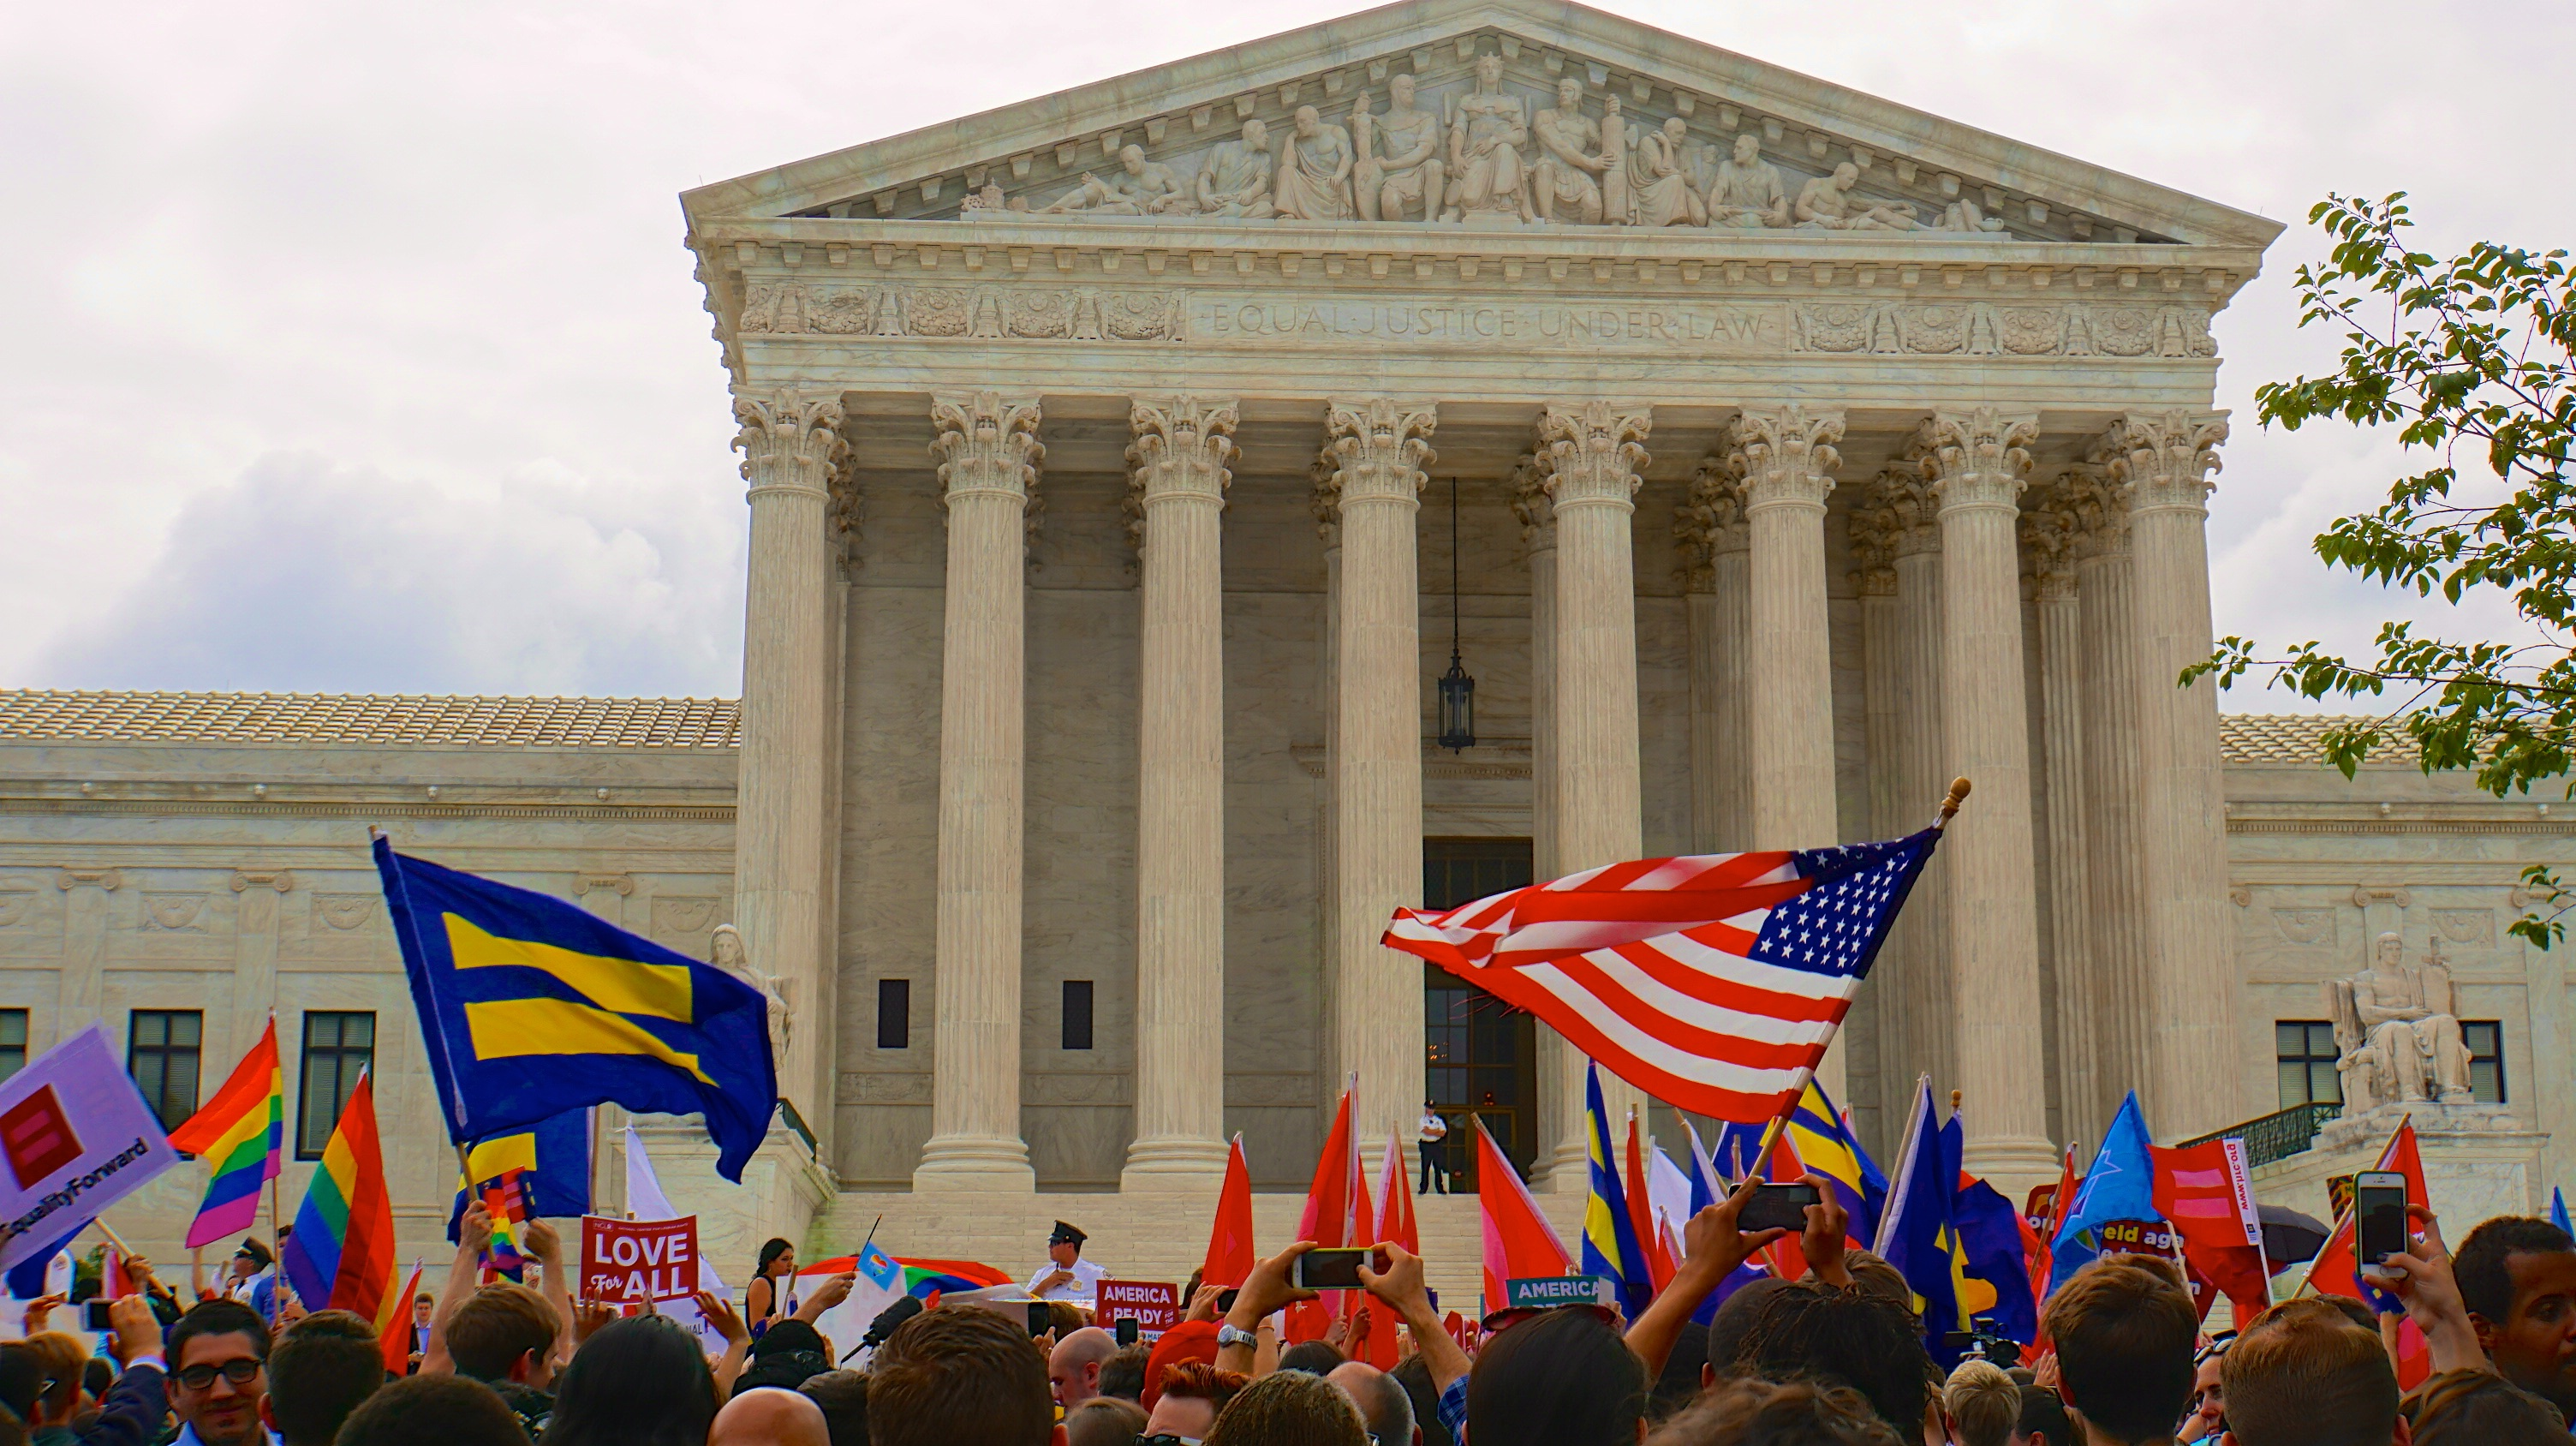 U.S. Supreme Court Ruling in Obergefell v. Hodges